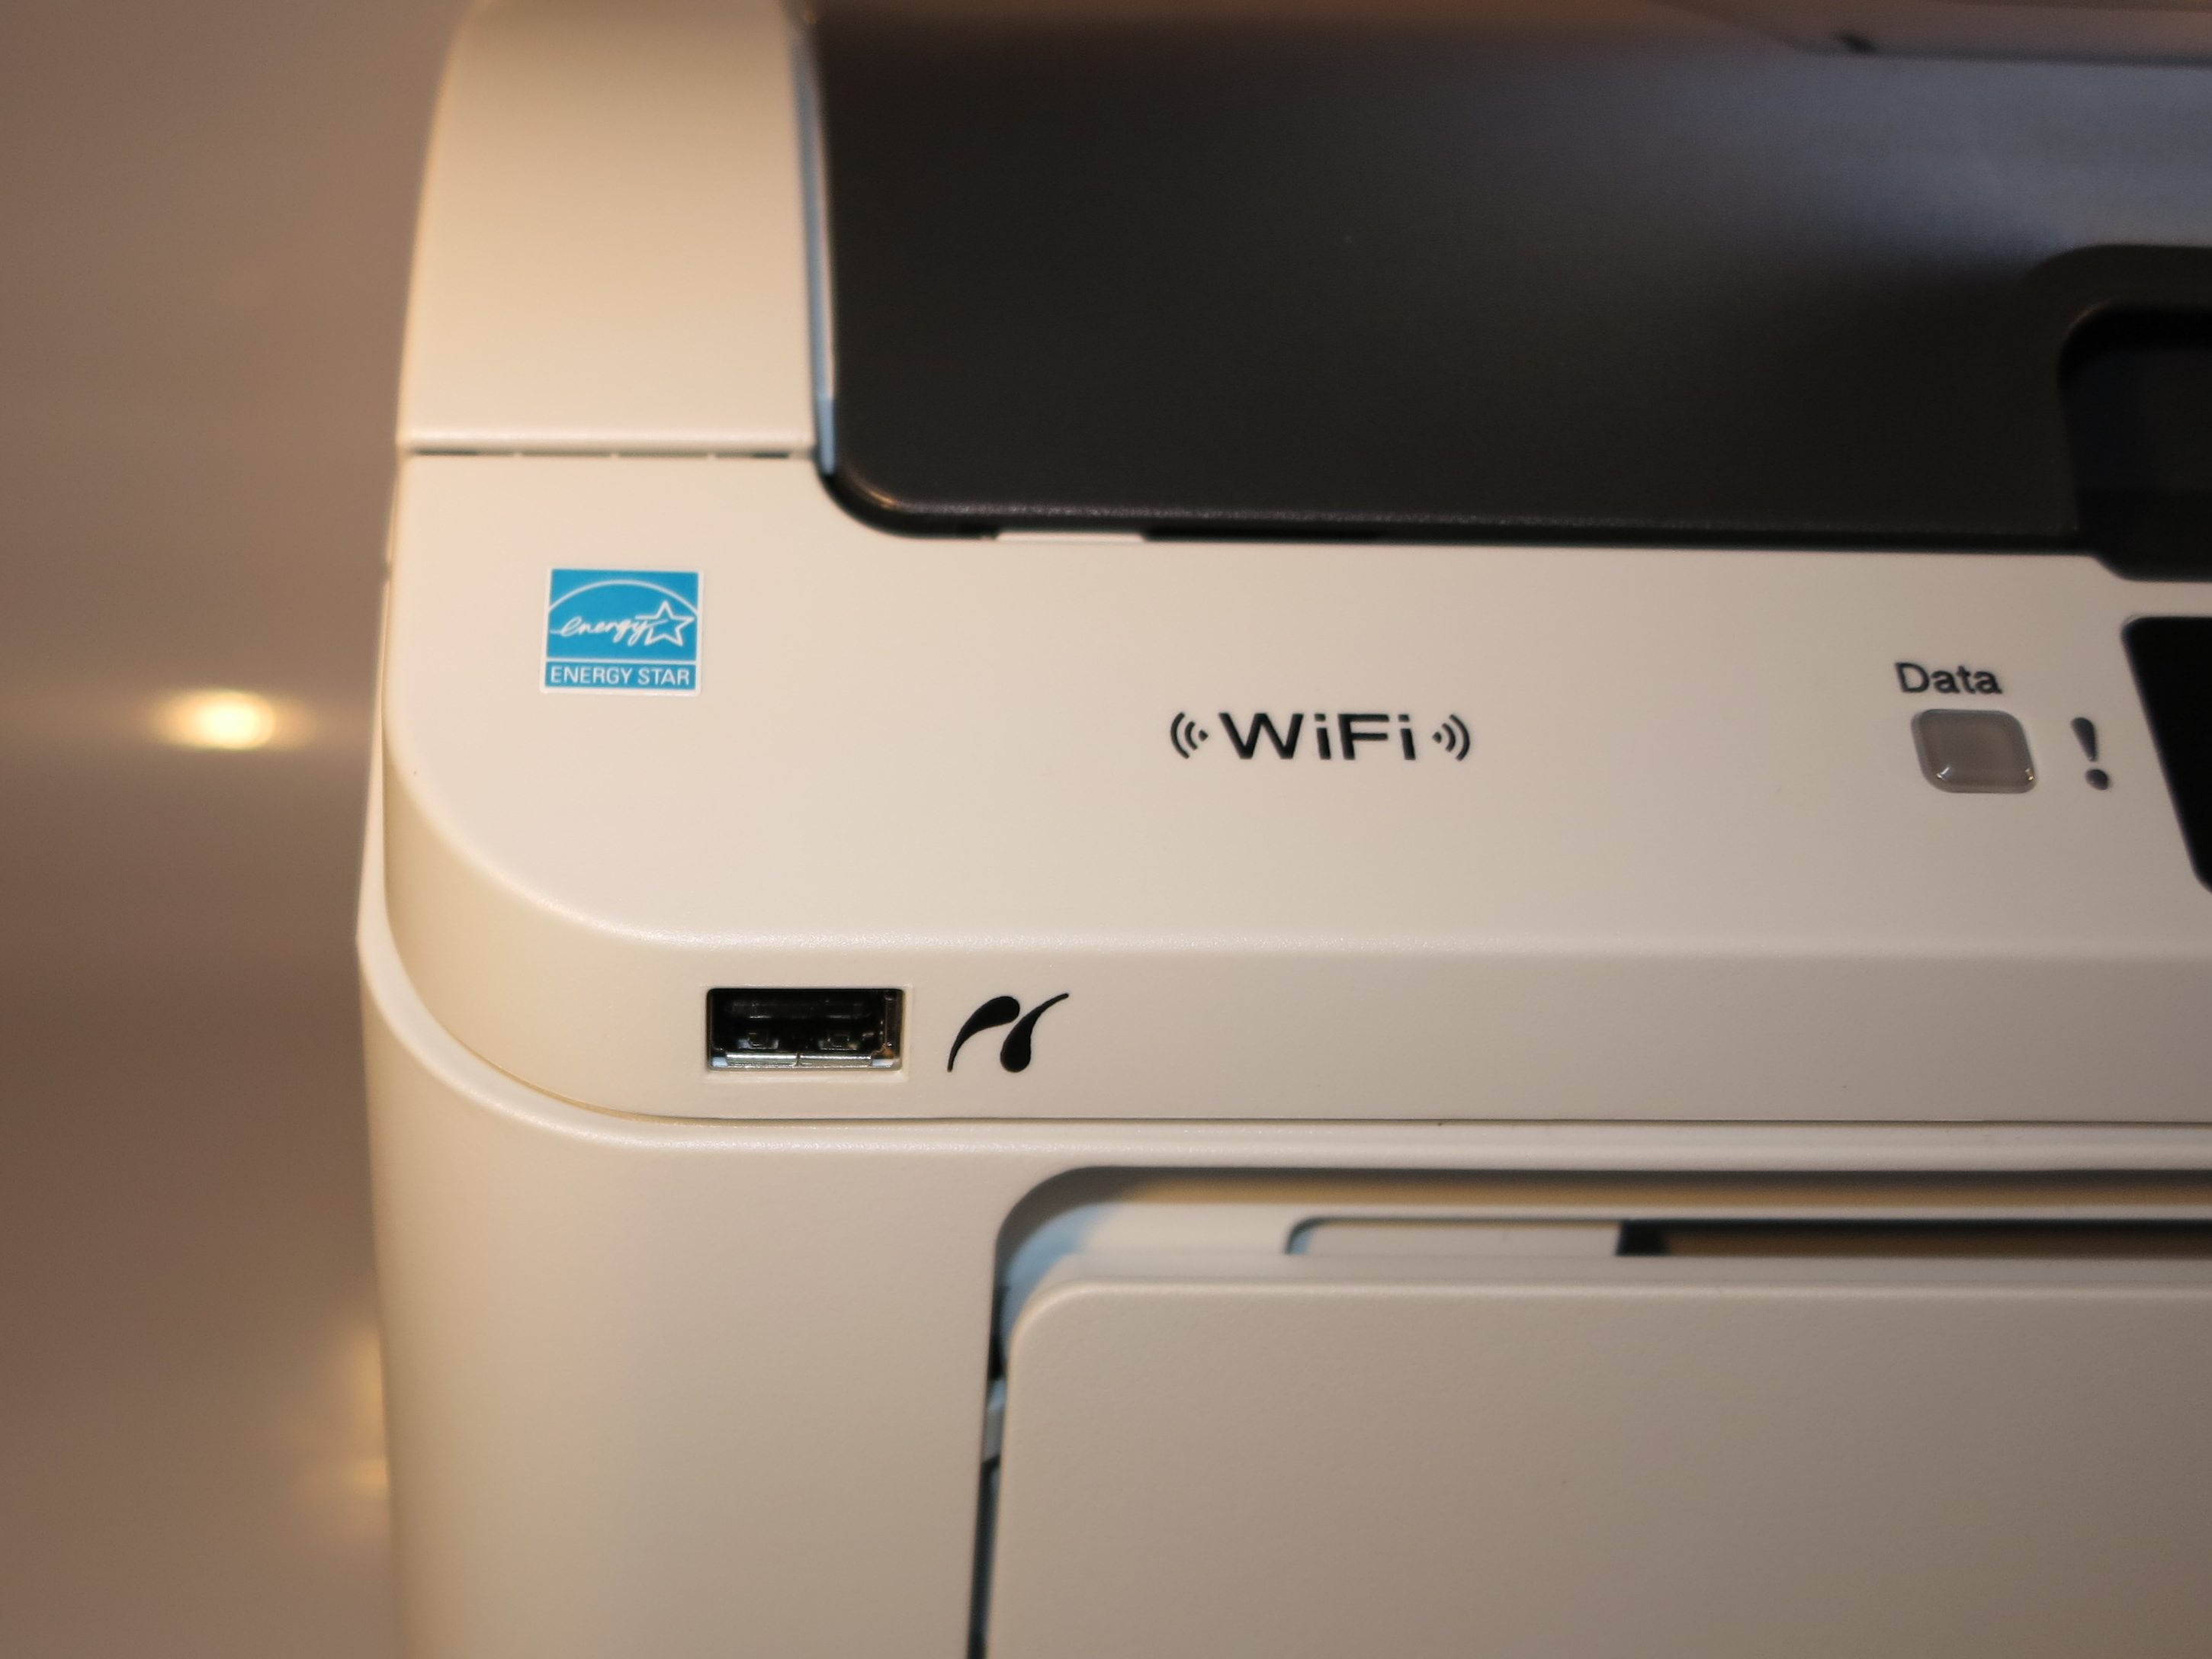 Brother HL-3075CW colour LED printer walk-up PictBridge USB connection